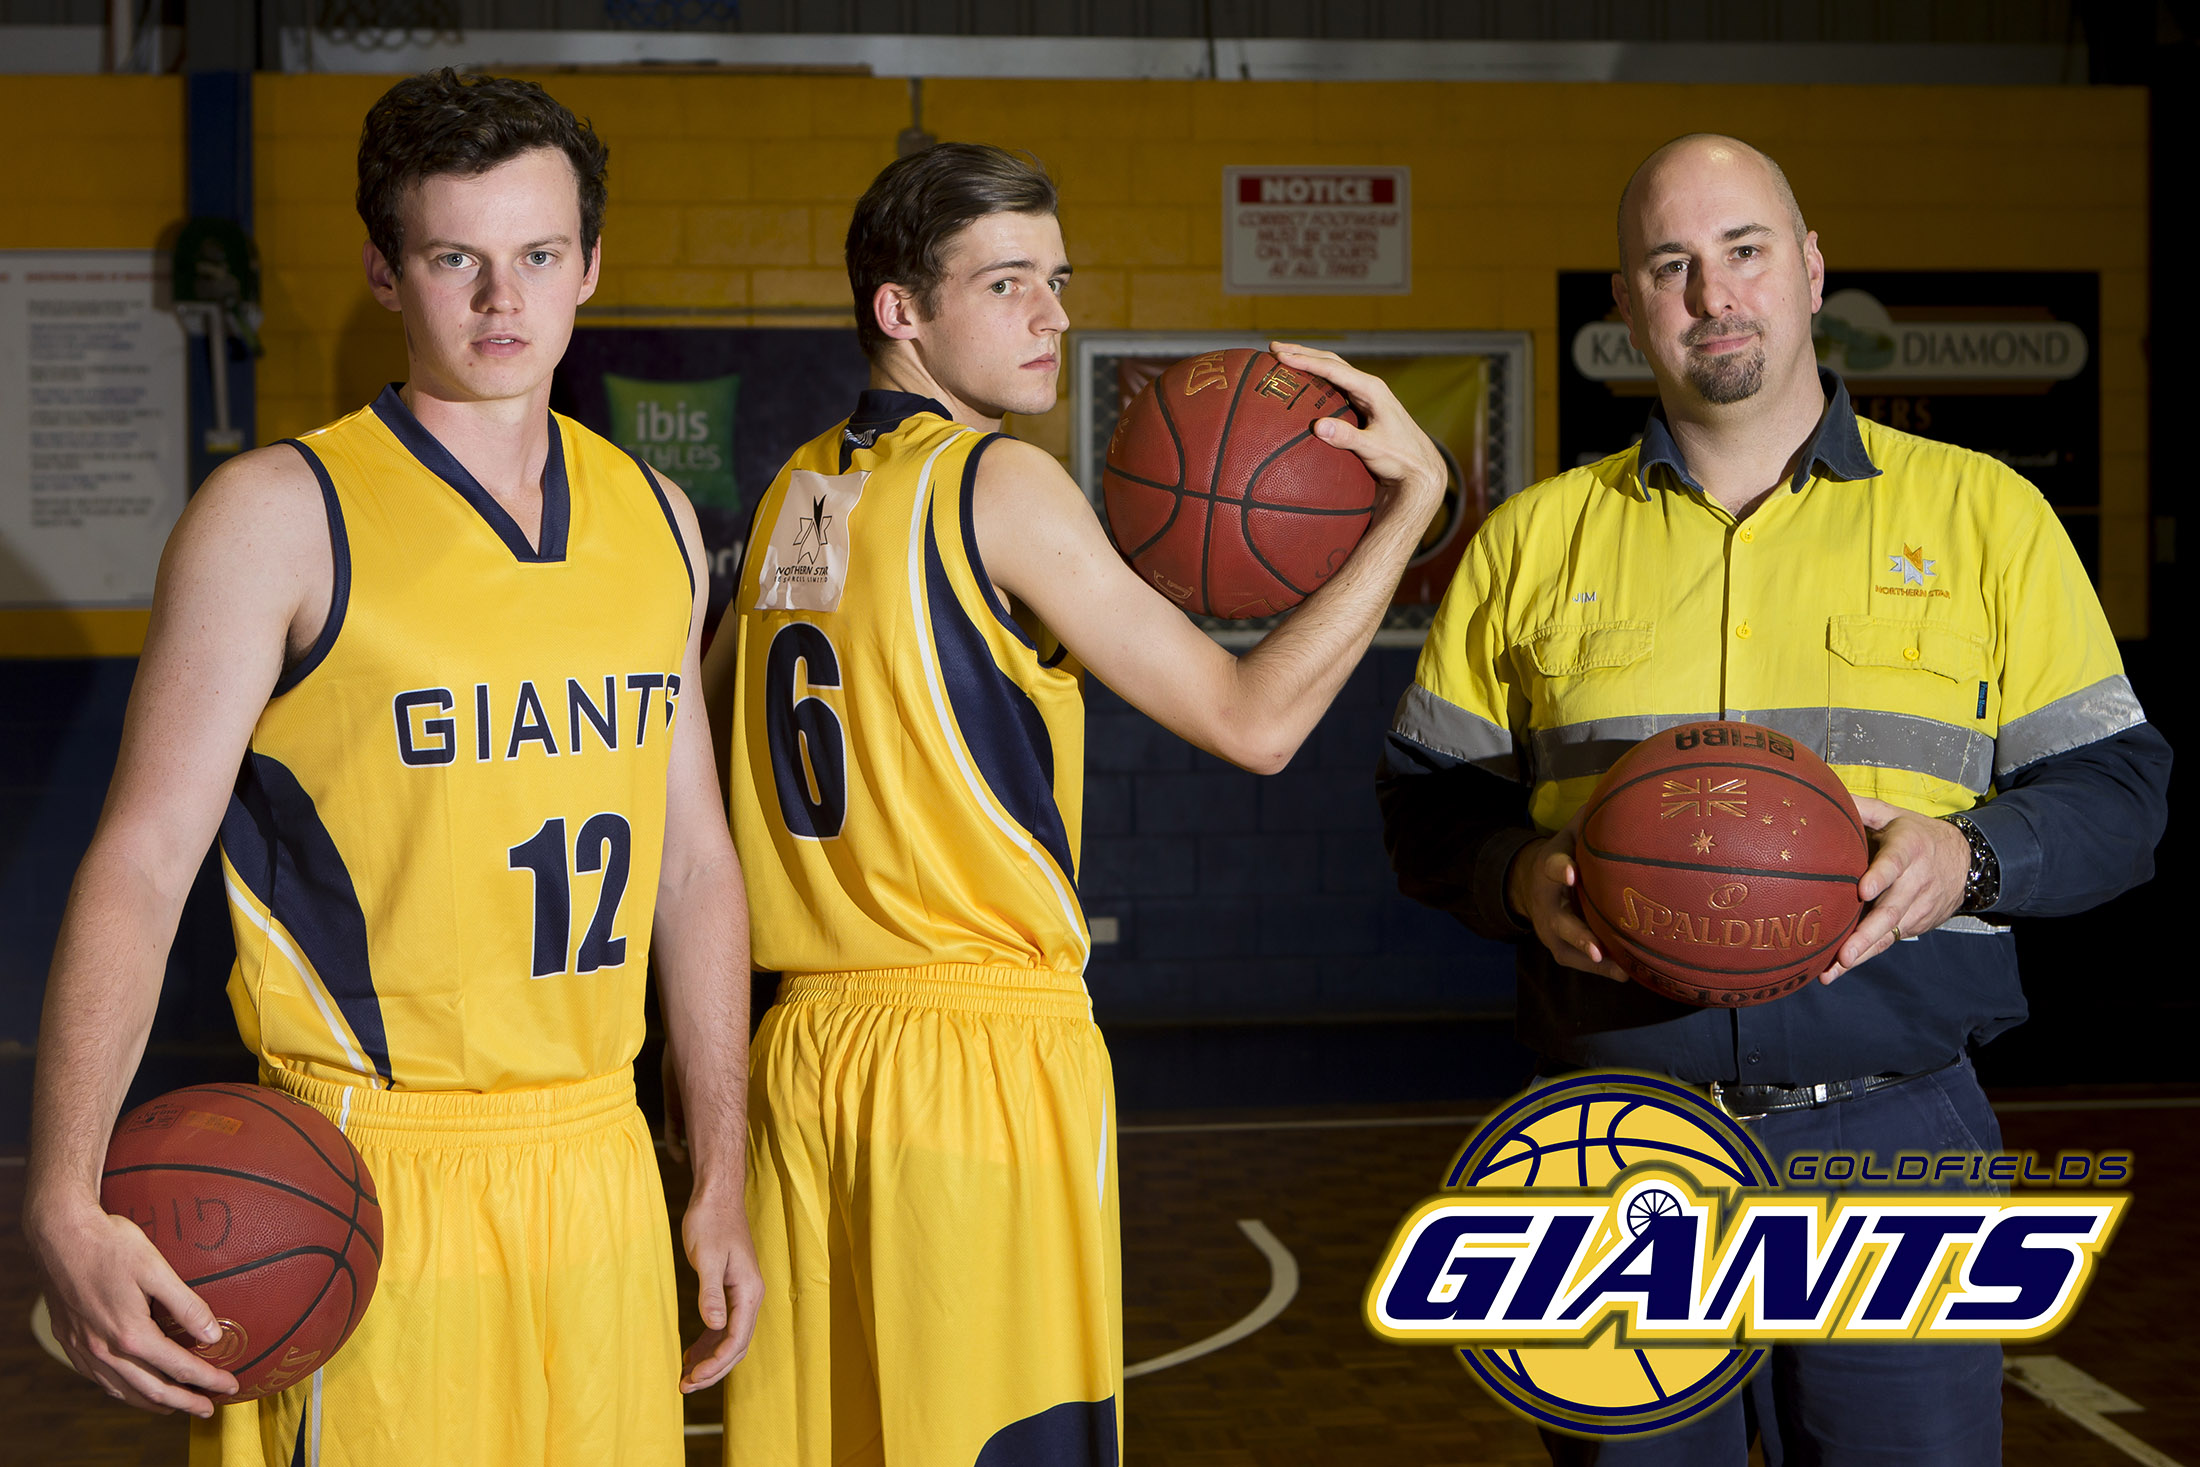 Northern Star Resources, Kalgoorlie Operations general manager Jim Coxon (right)  with Giants SBL Division 1 players Nathan Burrow and Nathan Vince earlier this year.